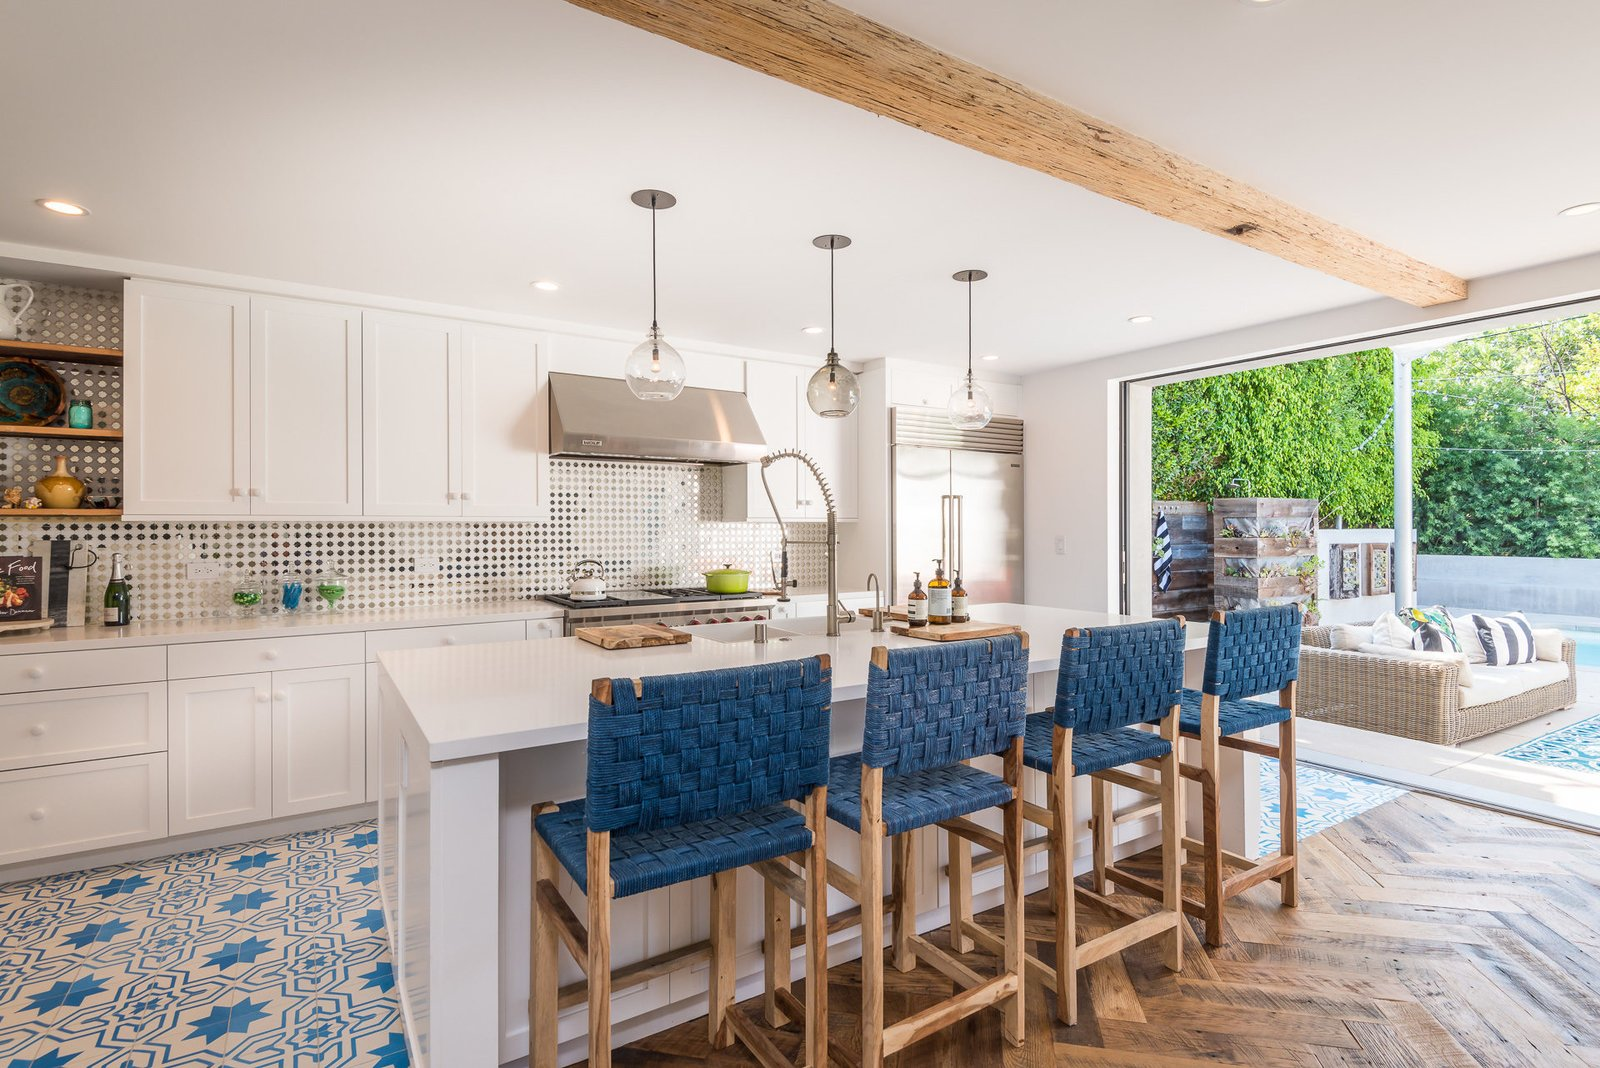 Tagged: Kitchen, White Cabinet, and Pendant Lighting. Mid-Century Meets Boho Chic by Zillow